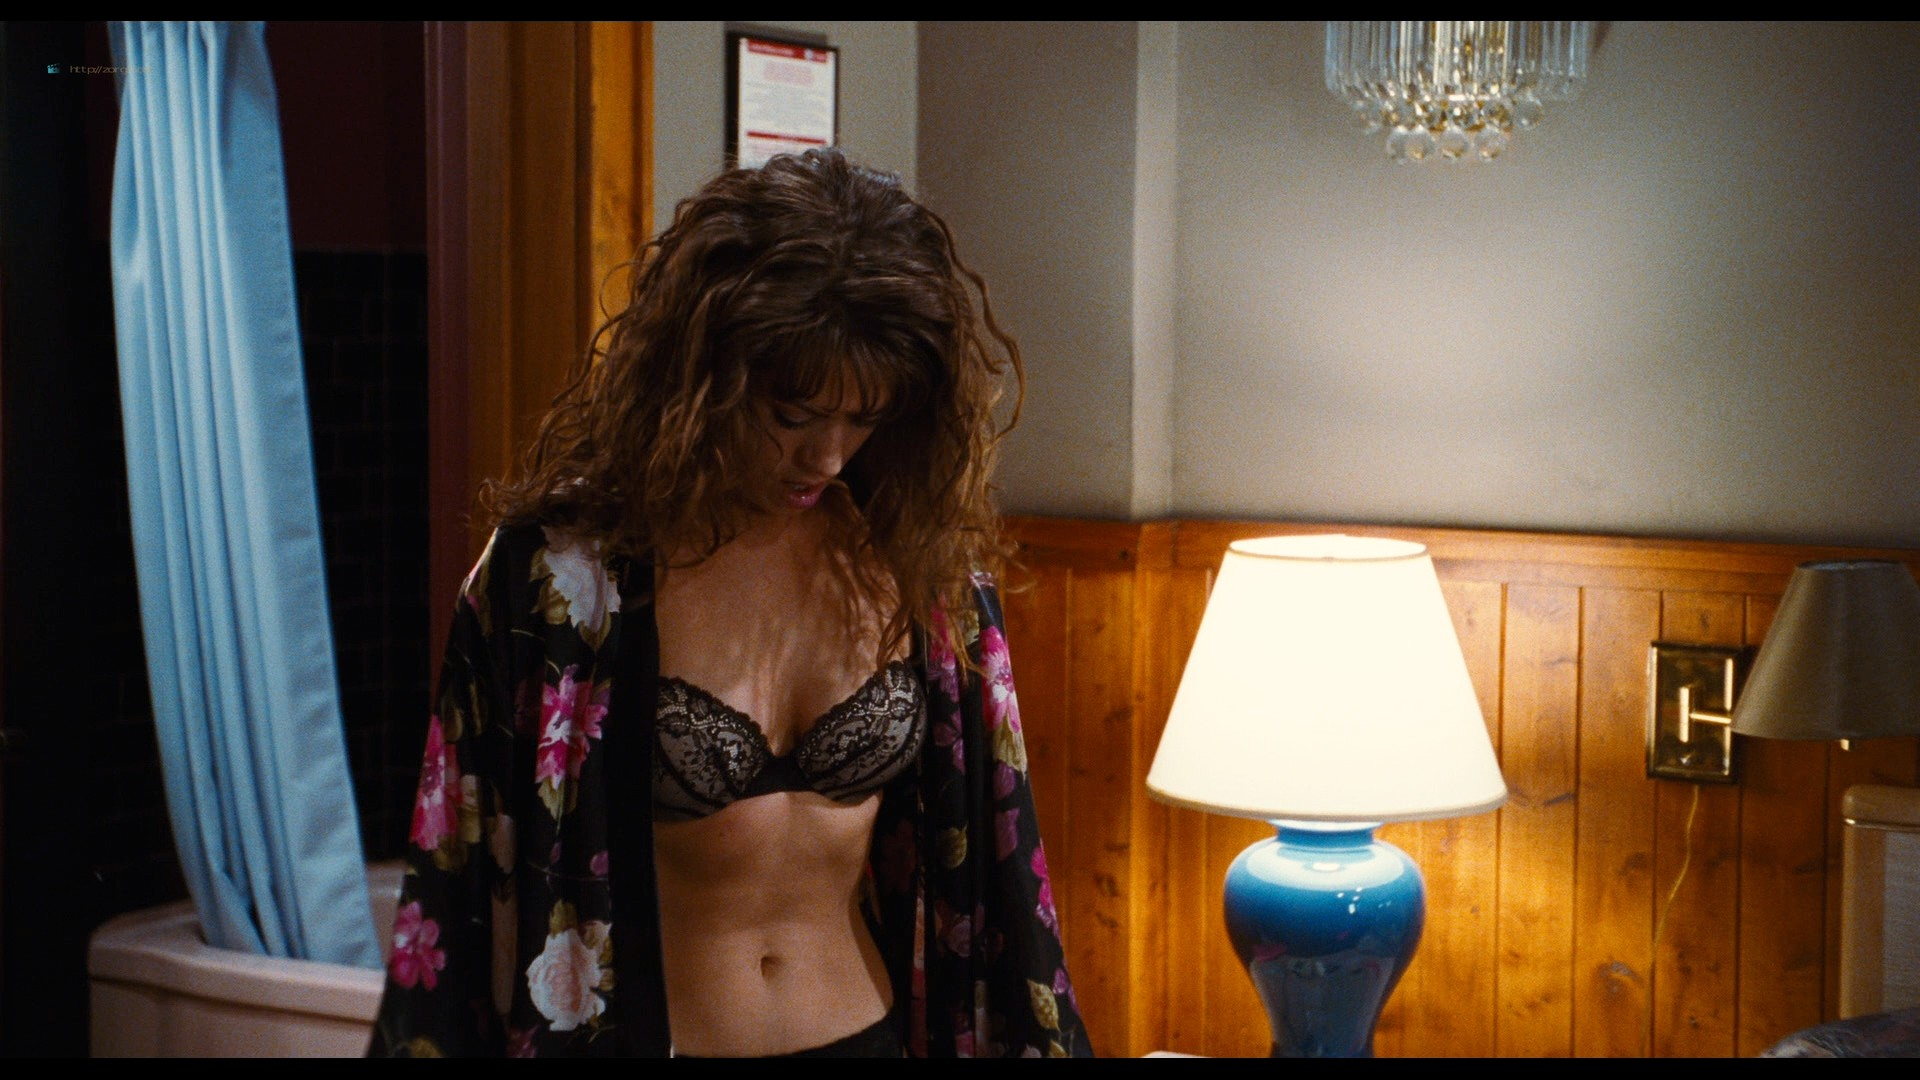 Jessica Pare nude Crystal Lowe topless Lyndsy Fonseca hot and sexy - Hot Tub Time Machine (2010) HD 1080p BluRay REMUX (19)